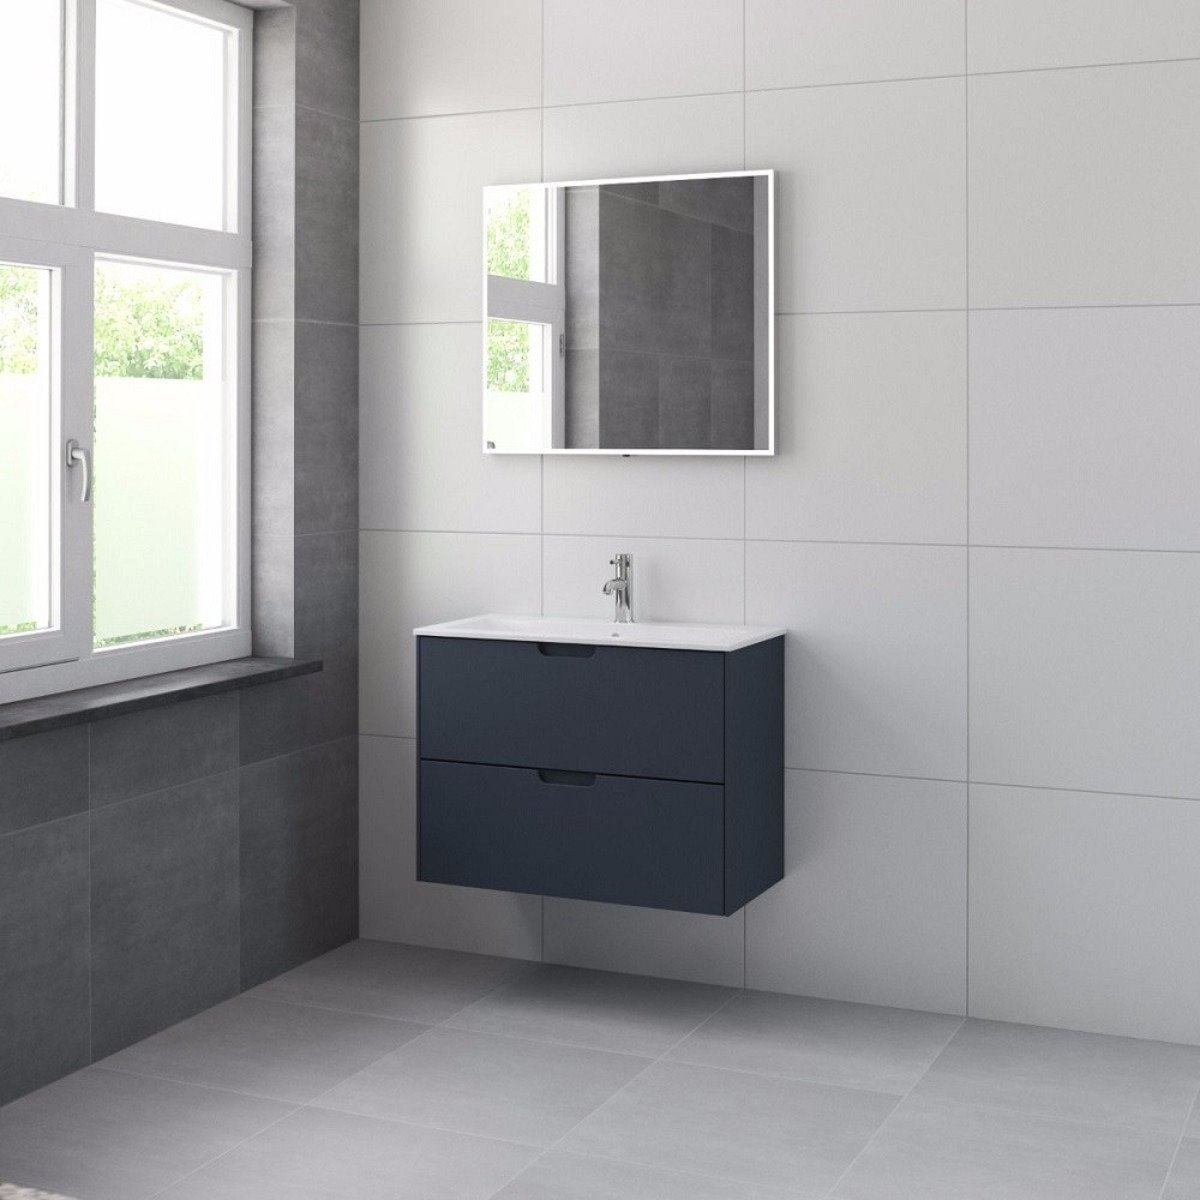 bruynzeel karo meuble sous lavabo 80cm 2 tiroirs bleu ancien 227145. Black Bedroom Furniture Sets. Home Design Ideas